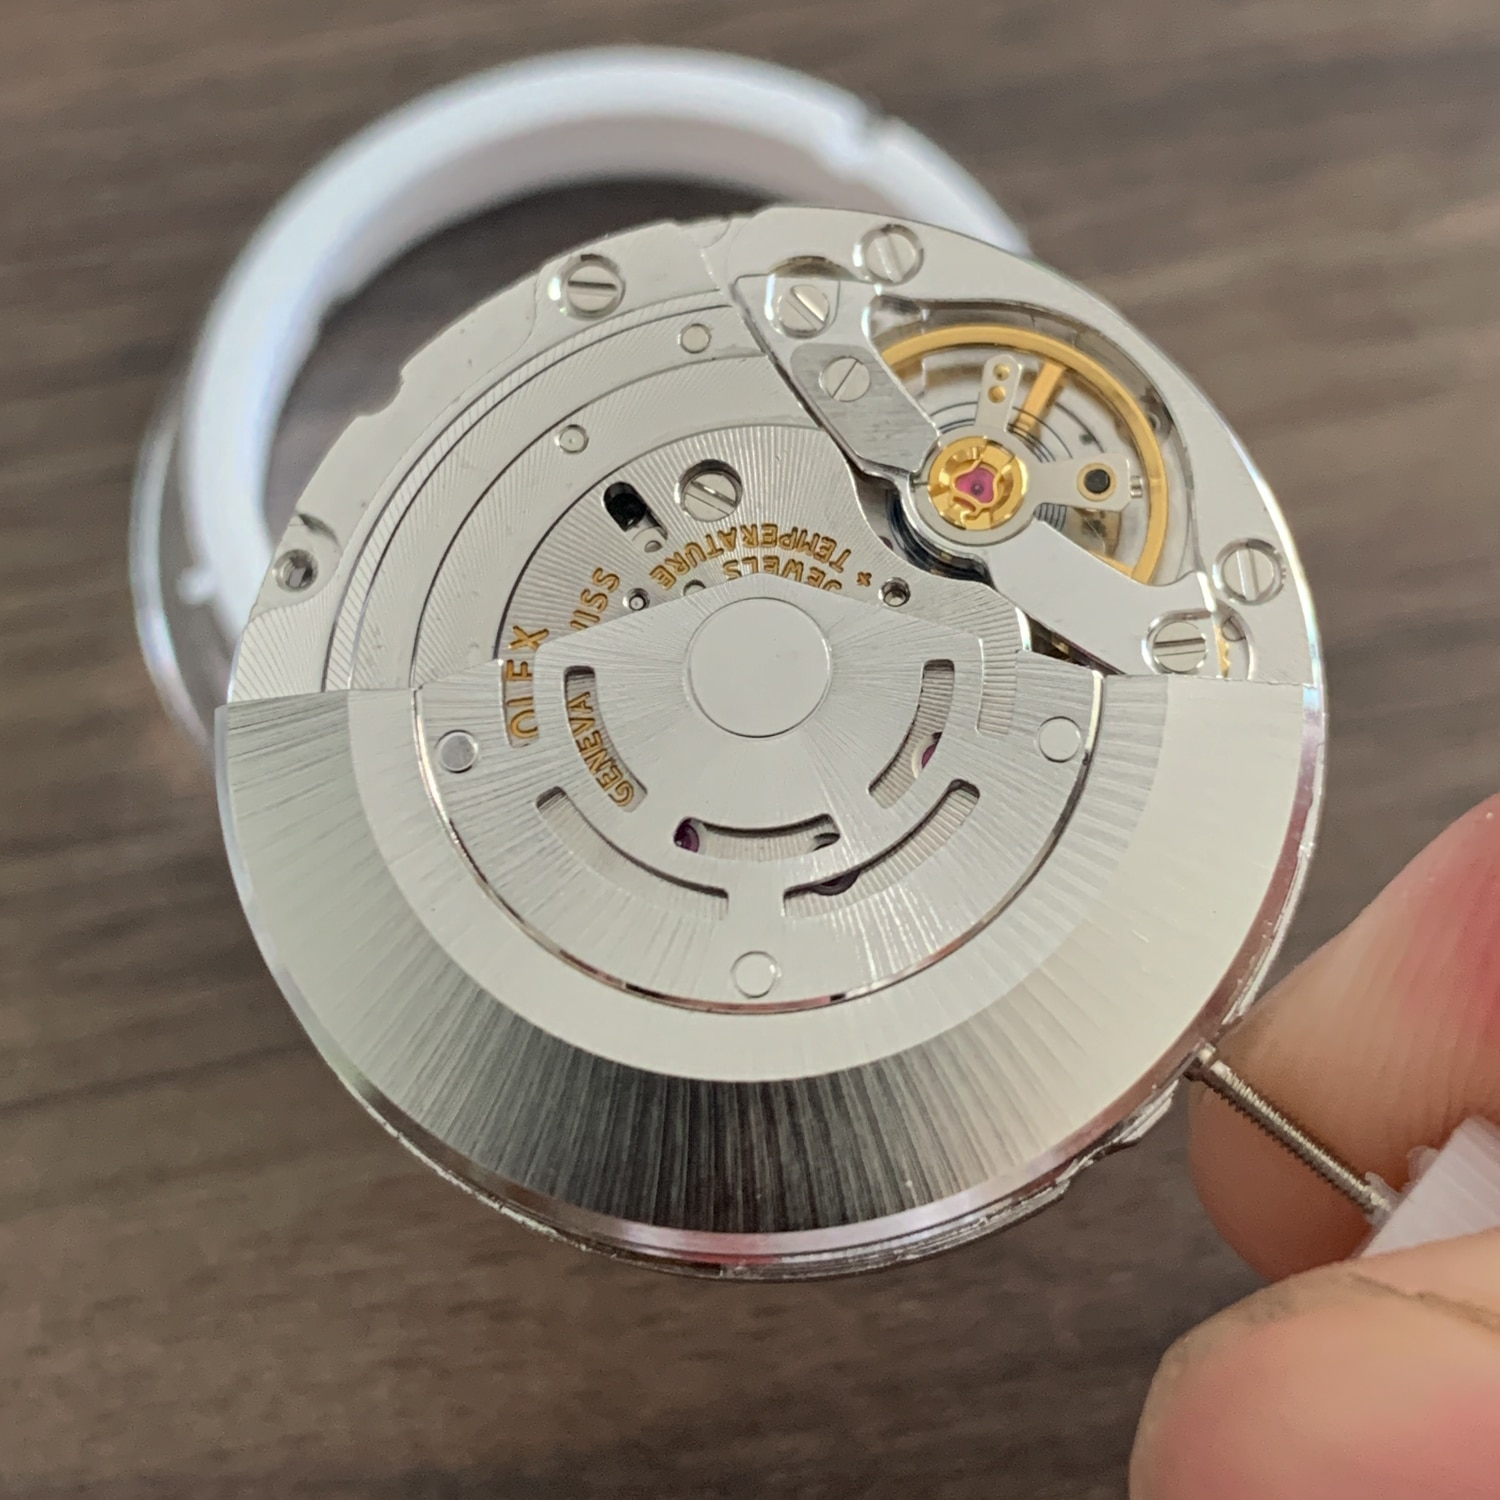 new VR 3135 movement watch part 100% new include 2 screws reliable quality